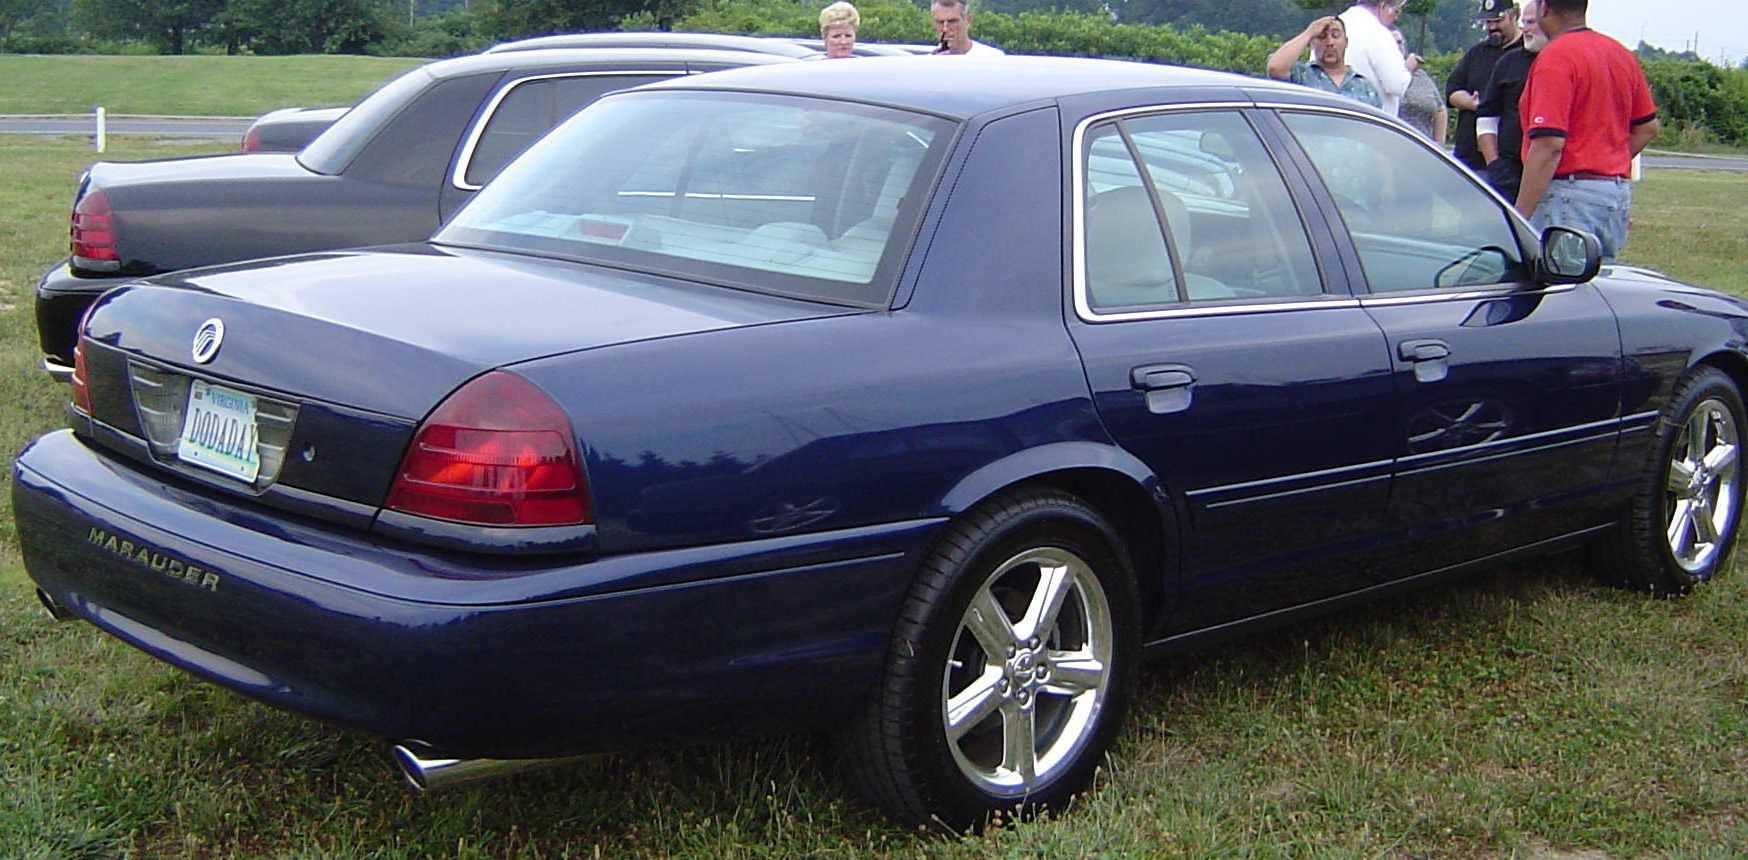 Mercury marauder in blue